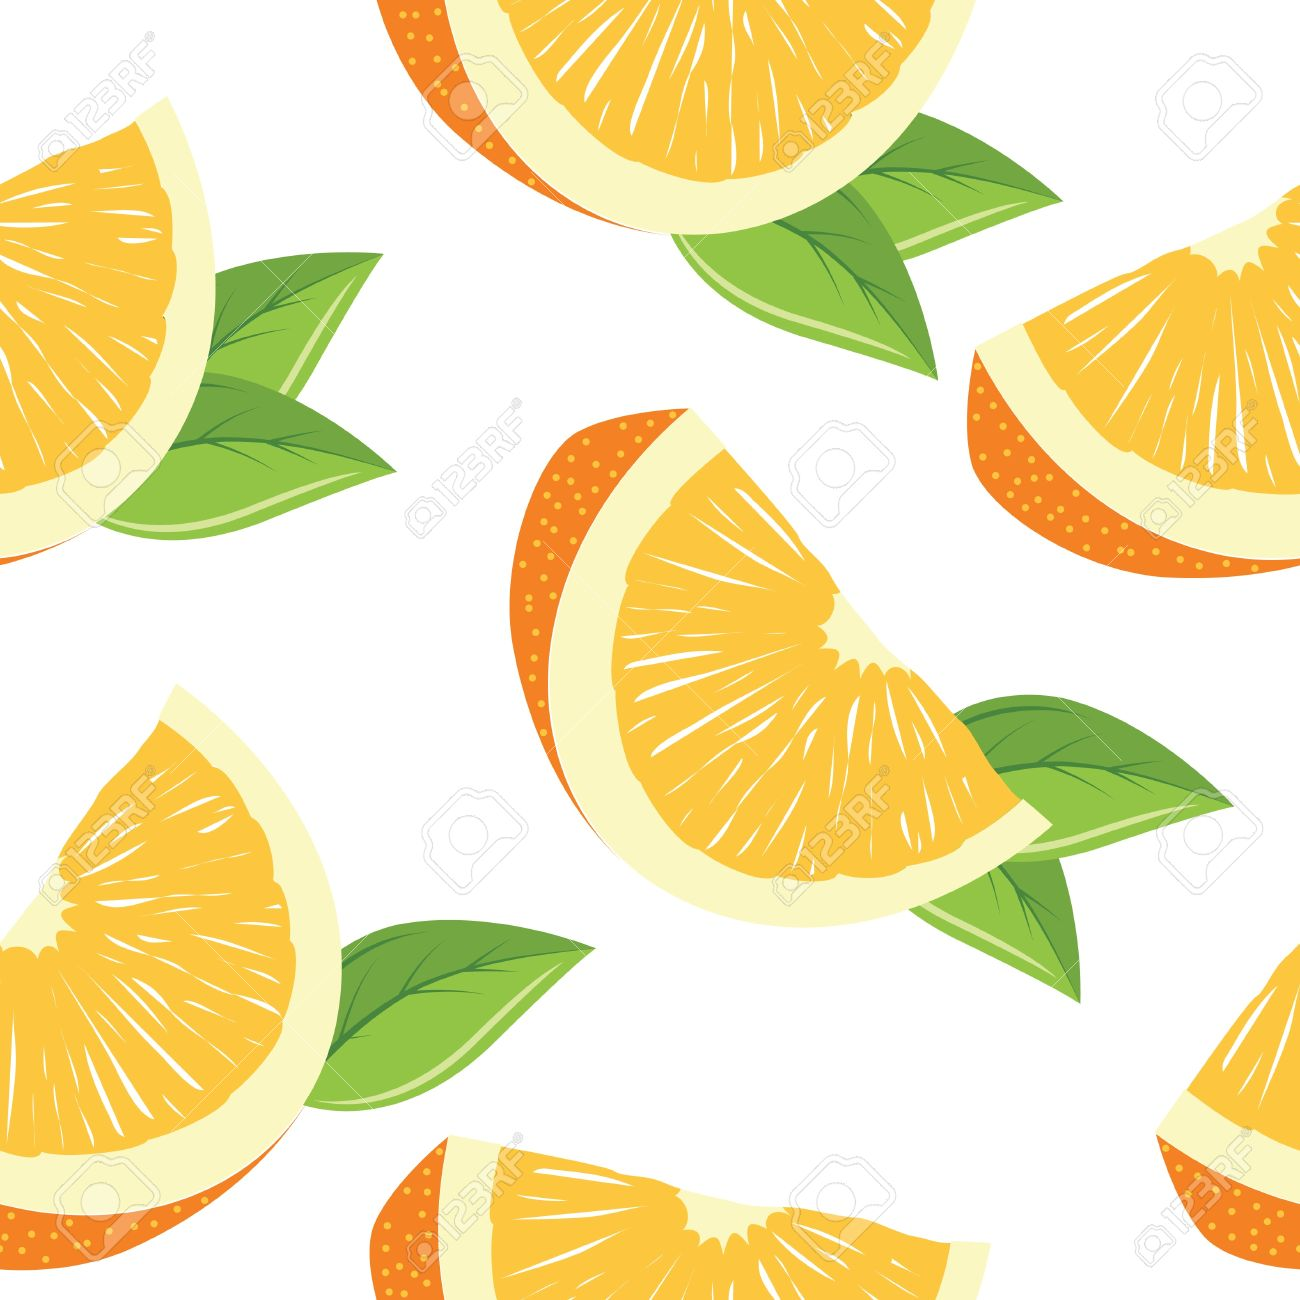 1300x1300 Orange (Fruit) Clipart Orange Slice